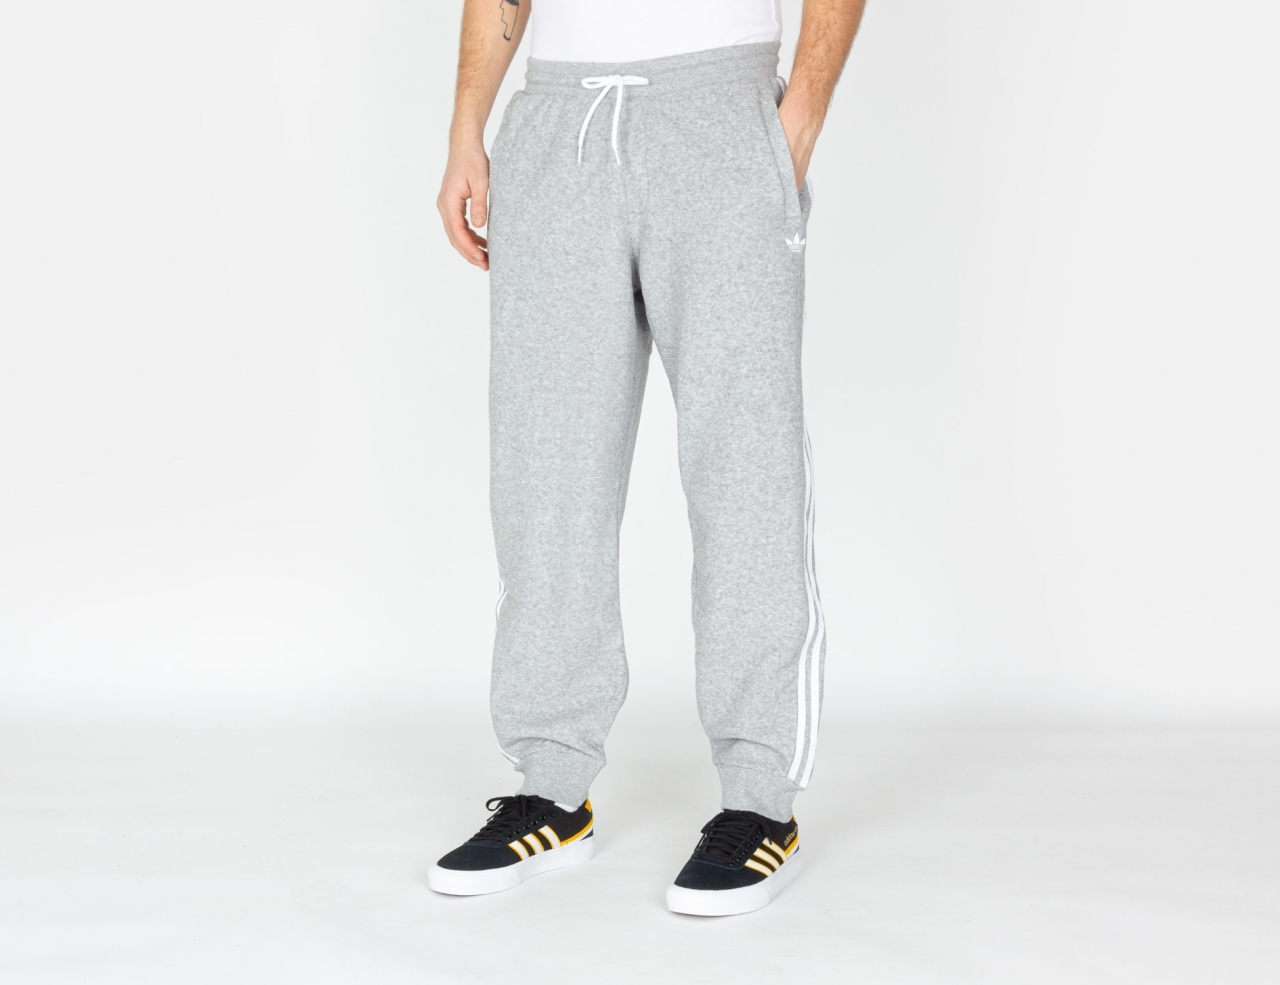 Adidas Boucle Track Pant - Medium Grey / White